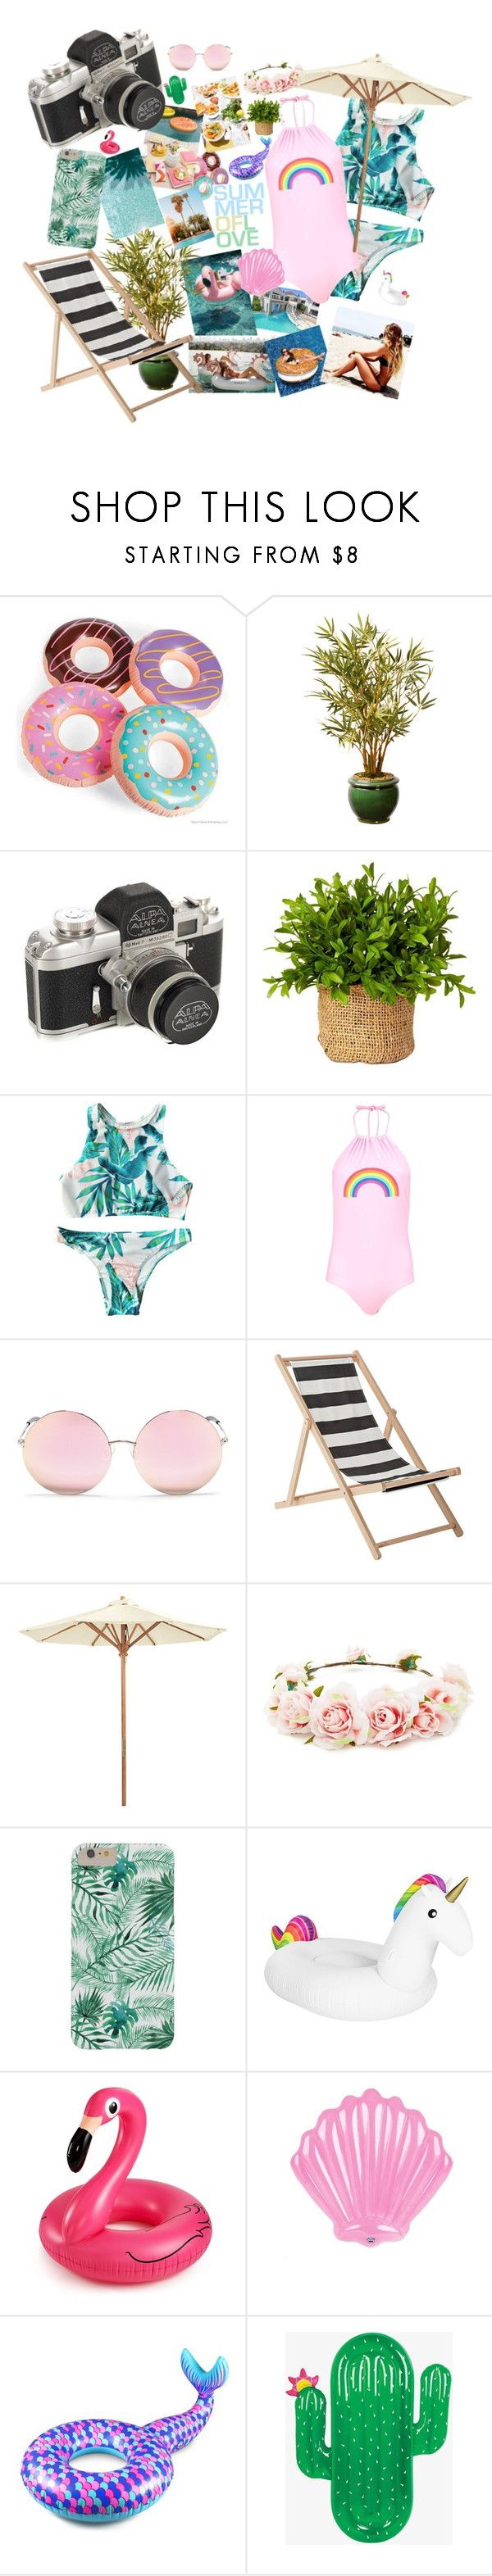 """""""Summer is the meaning of love for ME"""" by jannamariahmacaraeg ❤ liked on Polyvore featuring Boohoo, Matthew Williamson, Bloomingville, Ballard Designs, Forever 21, Big Mouth and West Elm"""